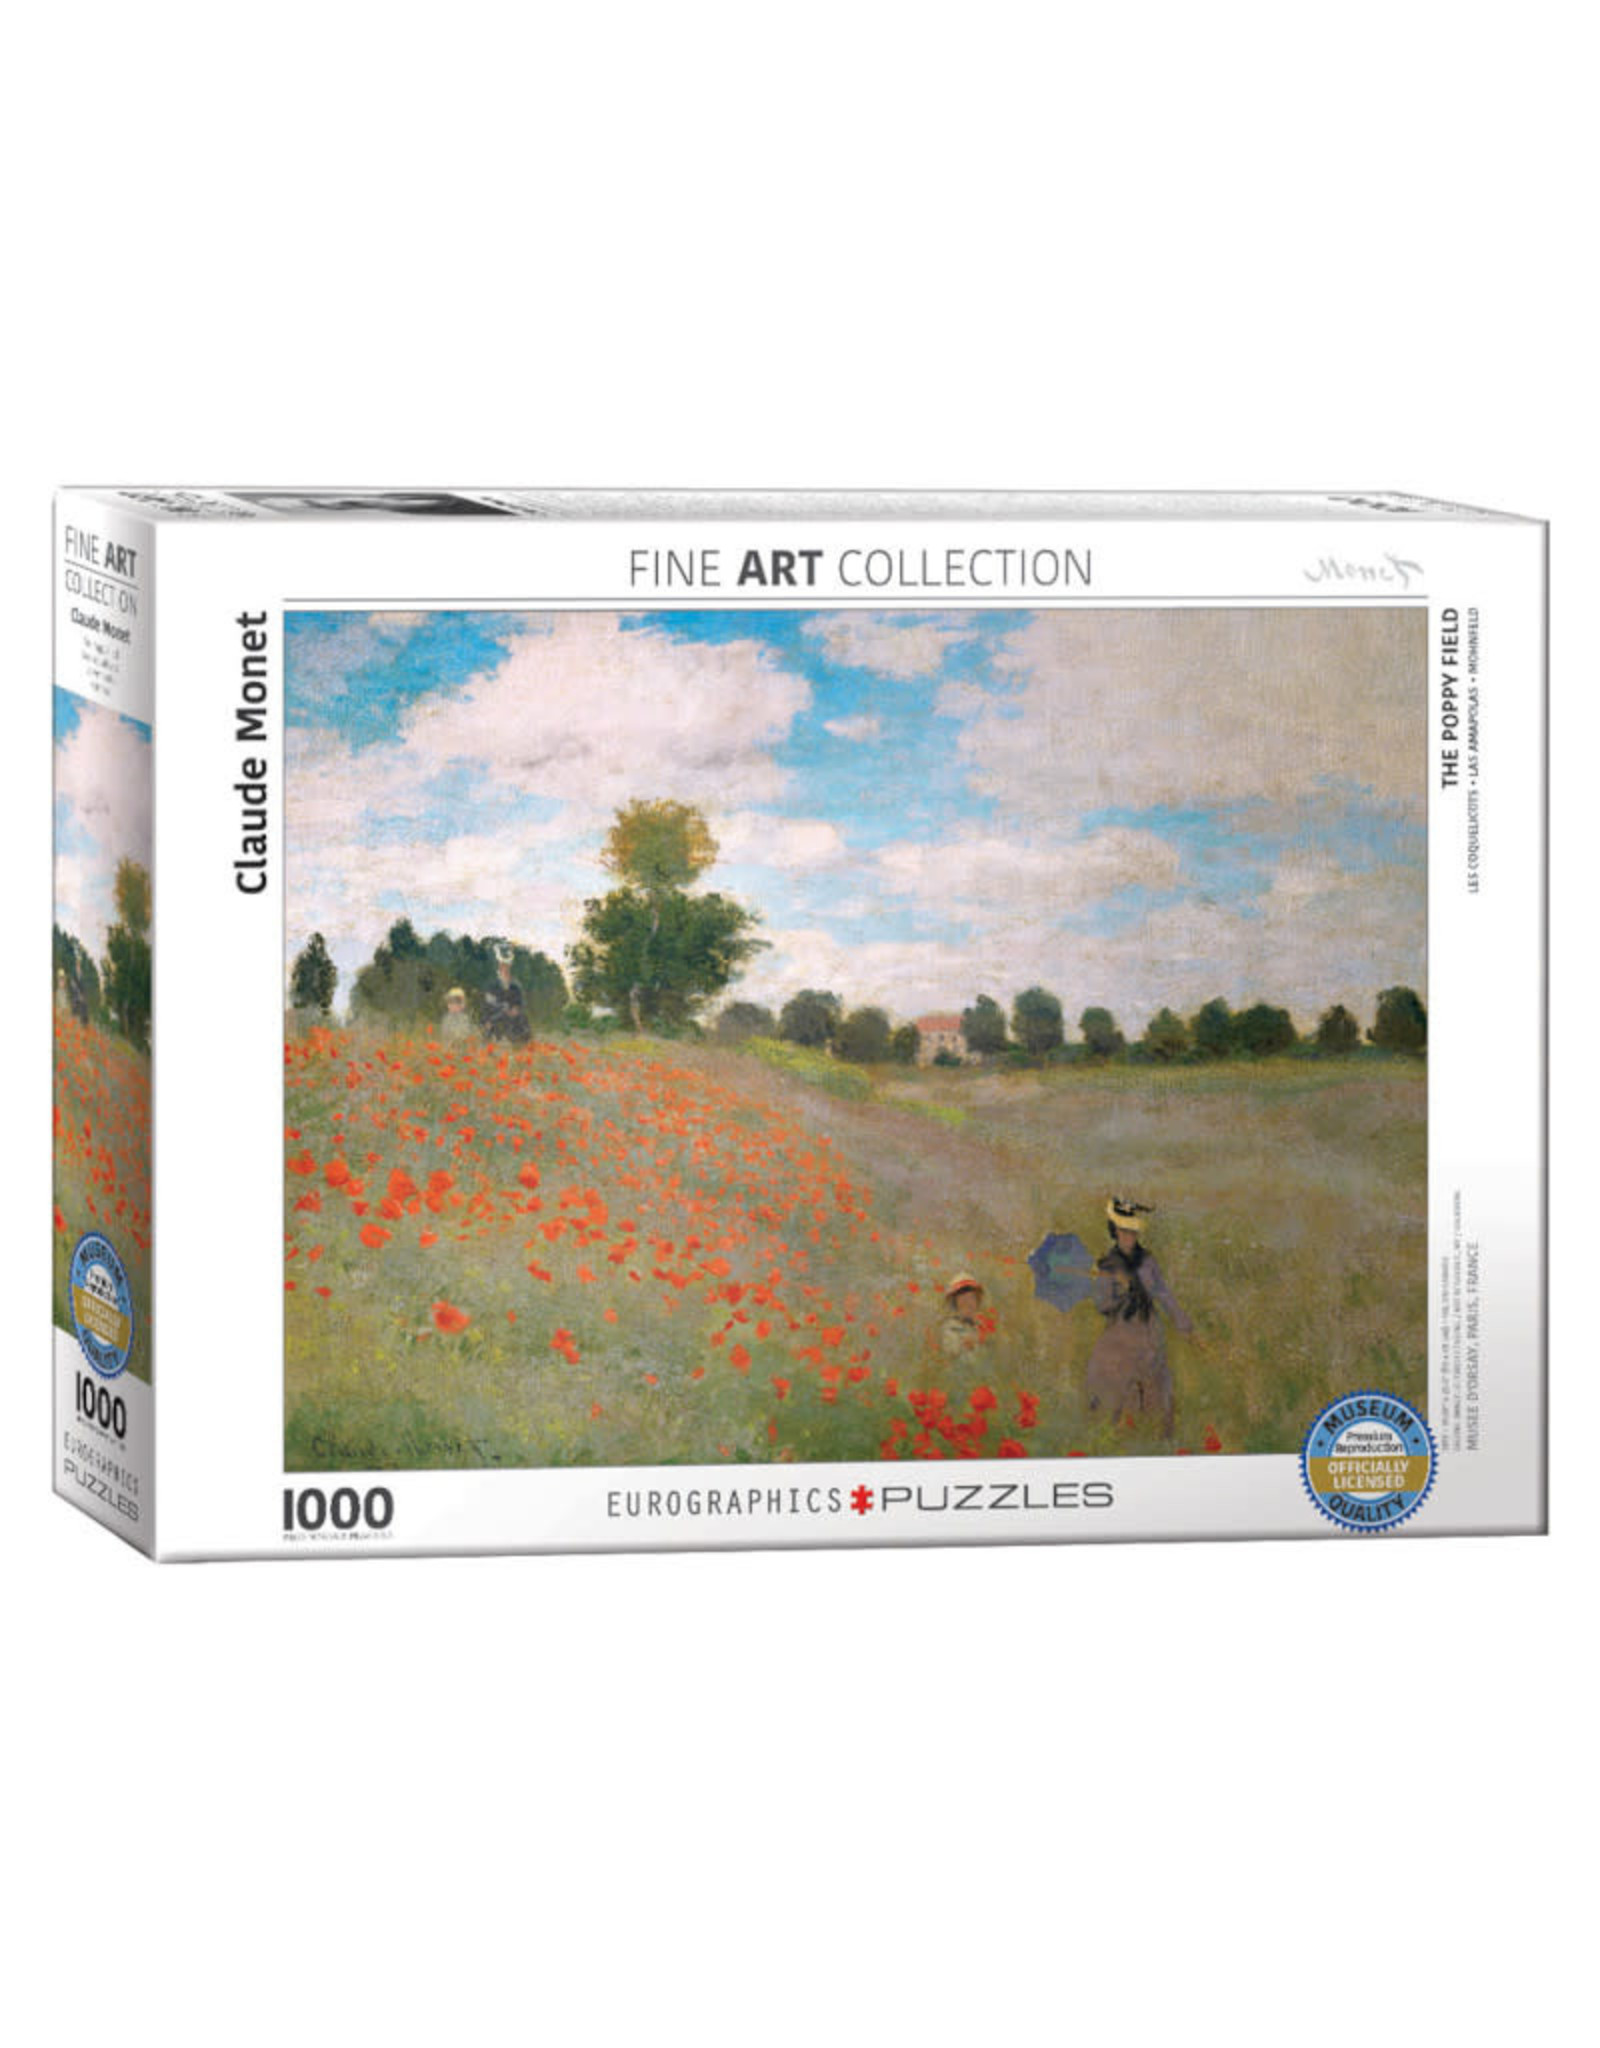 Eurographics Poppy Field Puzzle 1000 PCS (Monet)